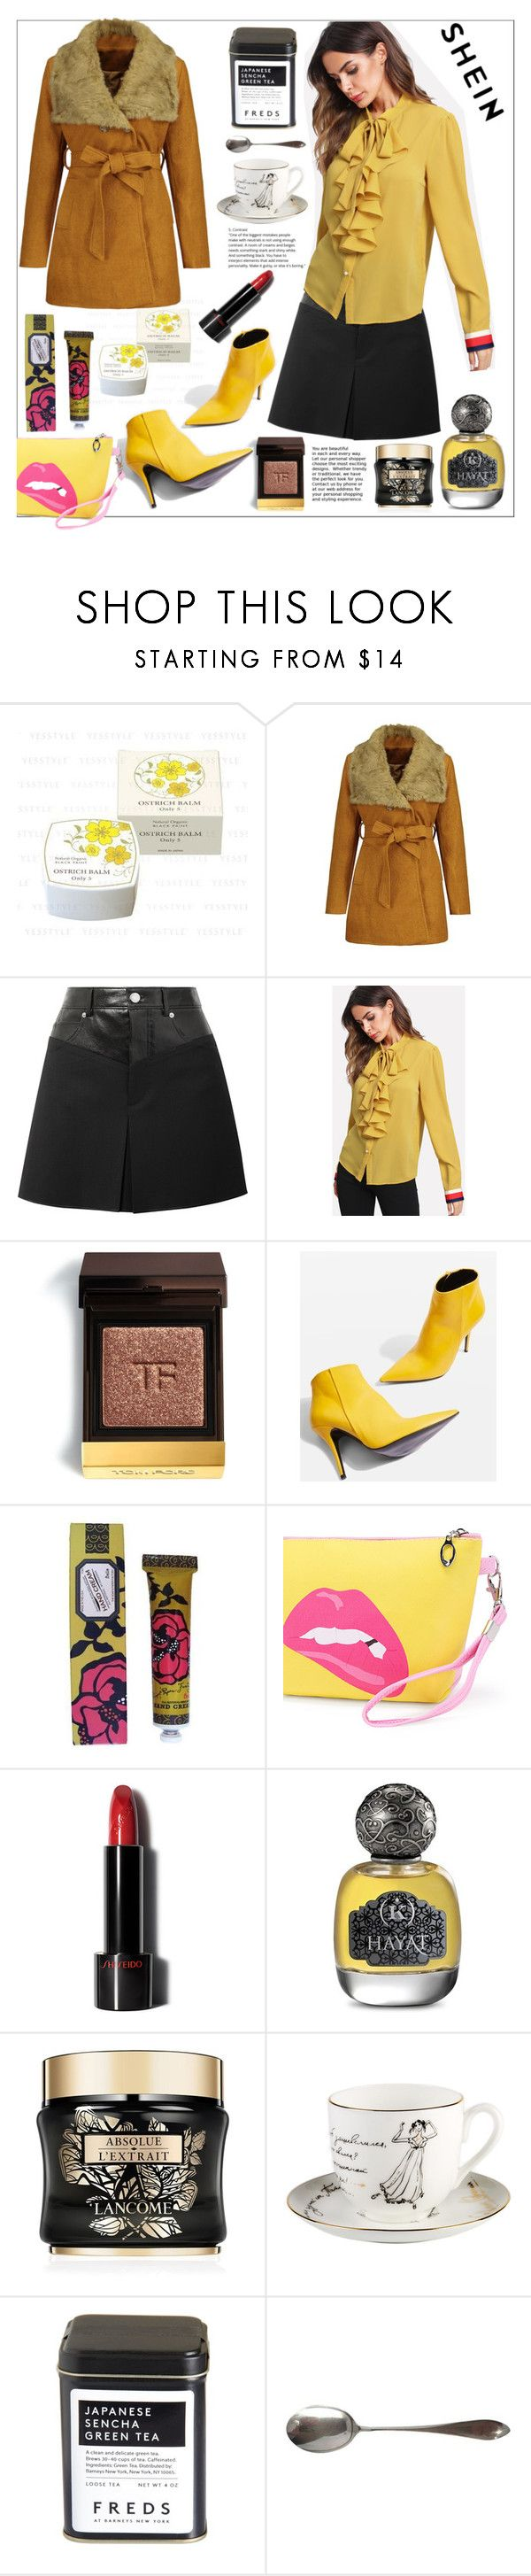 """""""Shein"""" by natalyapril1976 on Polyvore featuring Mode, Helmut Lang, Tom Ford, Topshop, Soap & Paper Factory, Lancôme und FREDS at Barneys New York"""